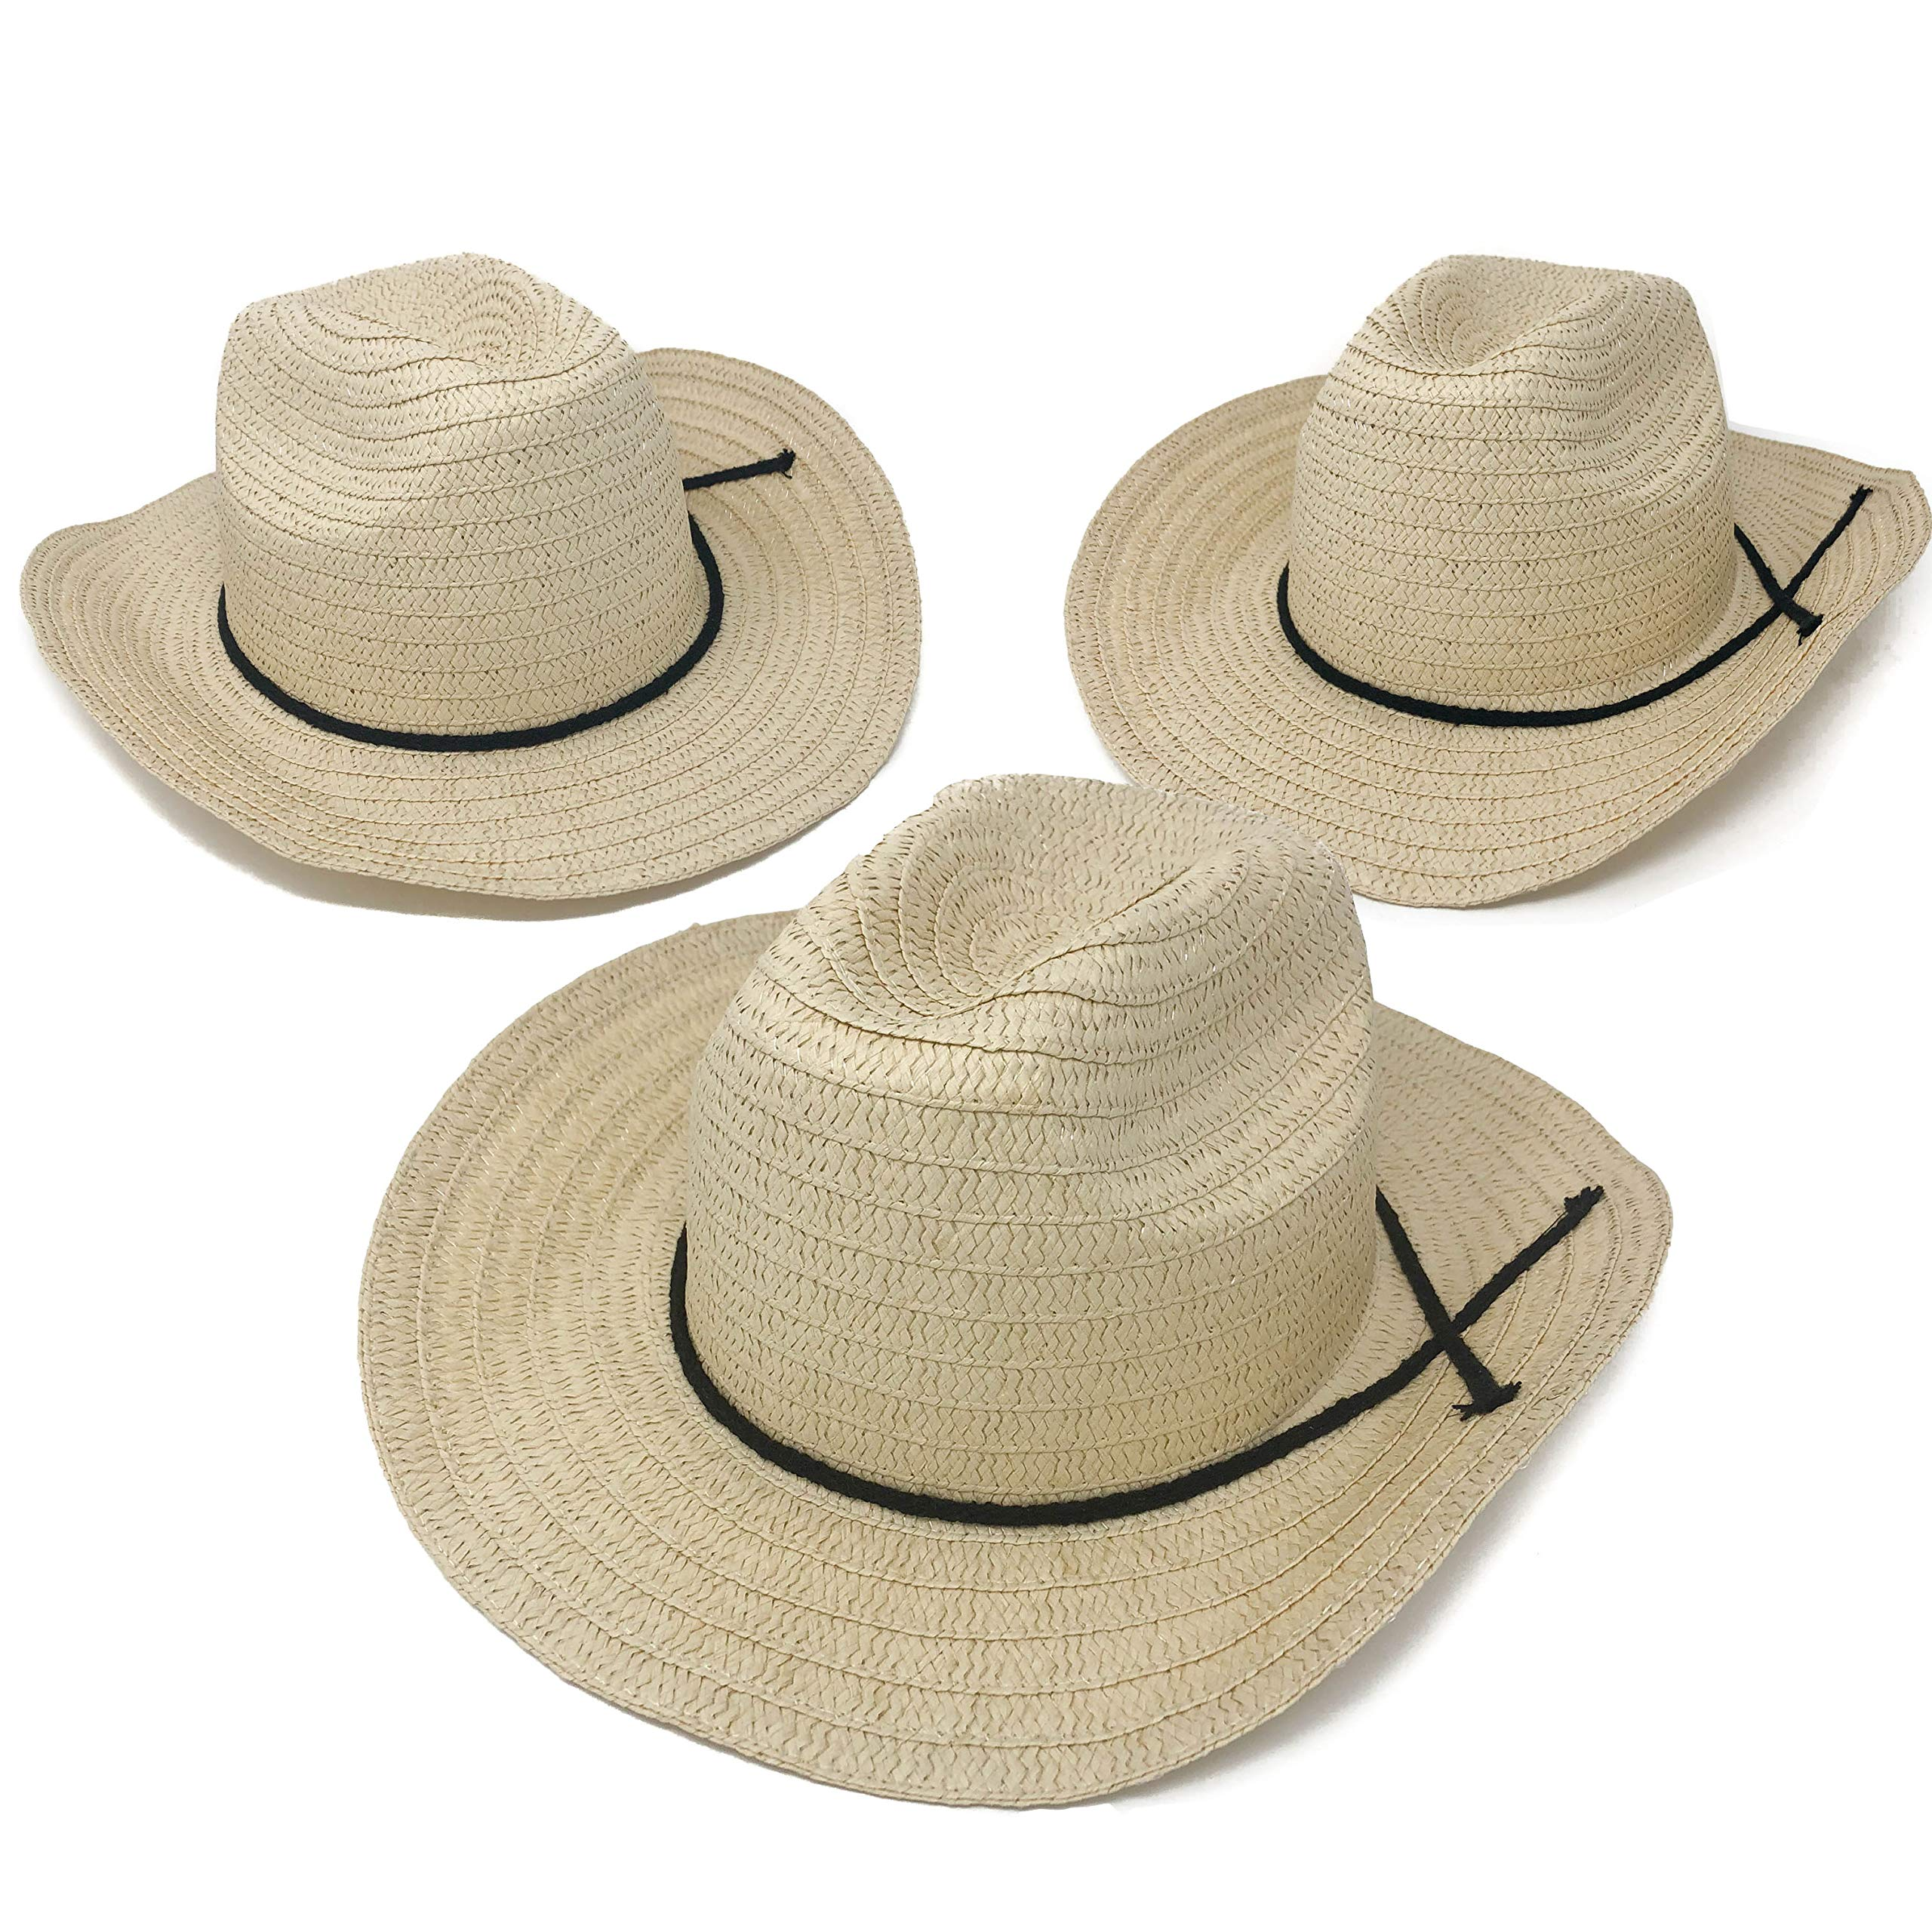 12 Piece Cowboy Hats - Adult Western Straw Hats with Band for Western Theme Party